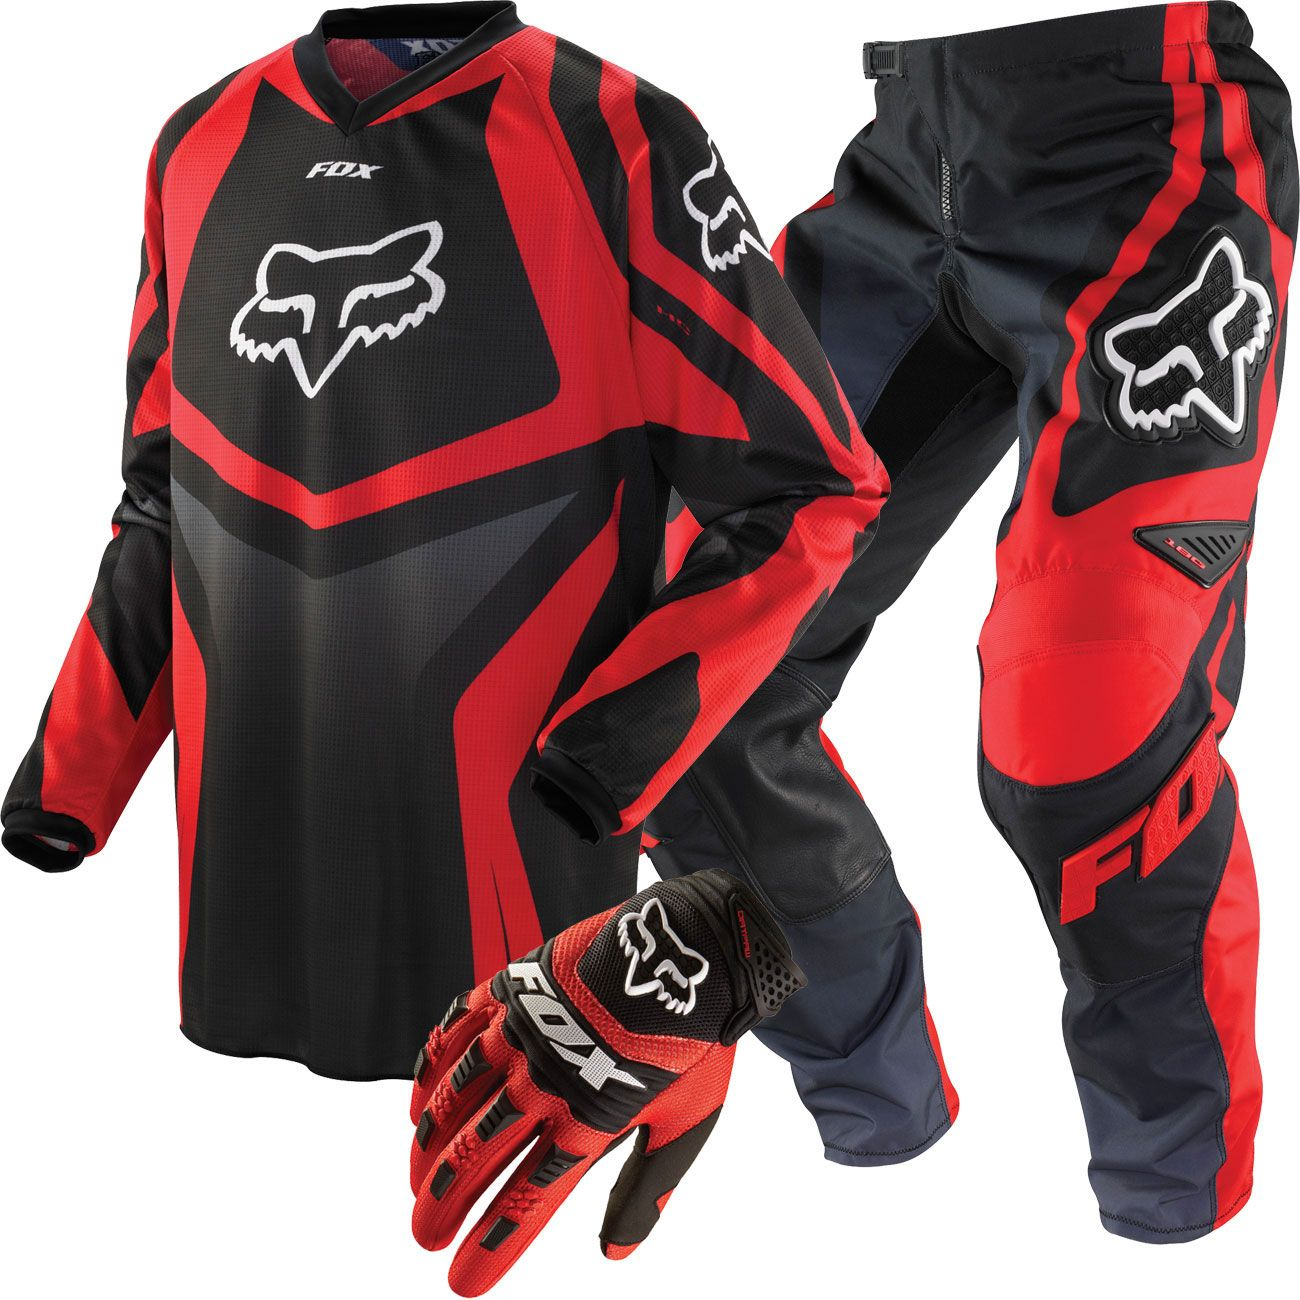 Fox Racing Hc 180 Race Youth Package Deal Black And Red Dirt Bike Clothing Youth Dirt Bike Gear Bmx Gear